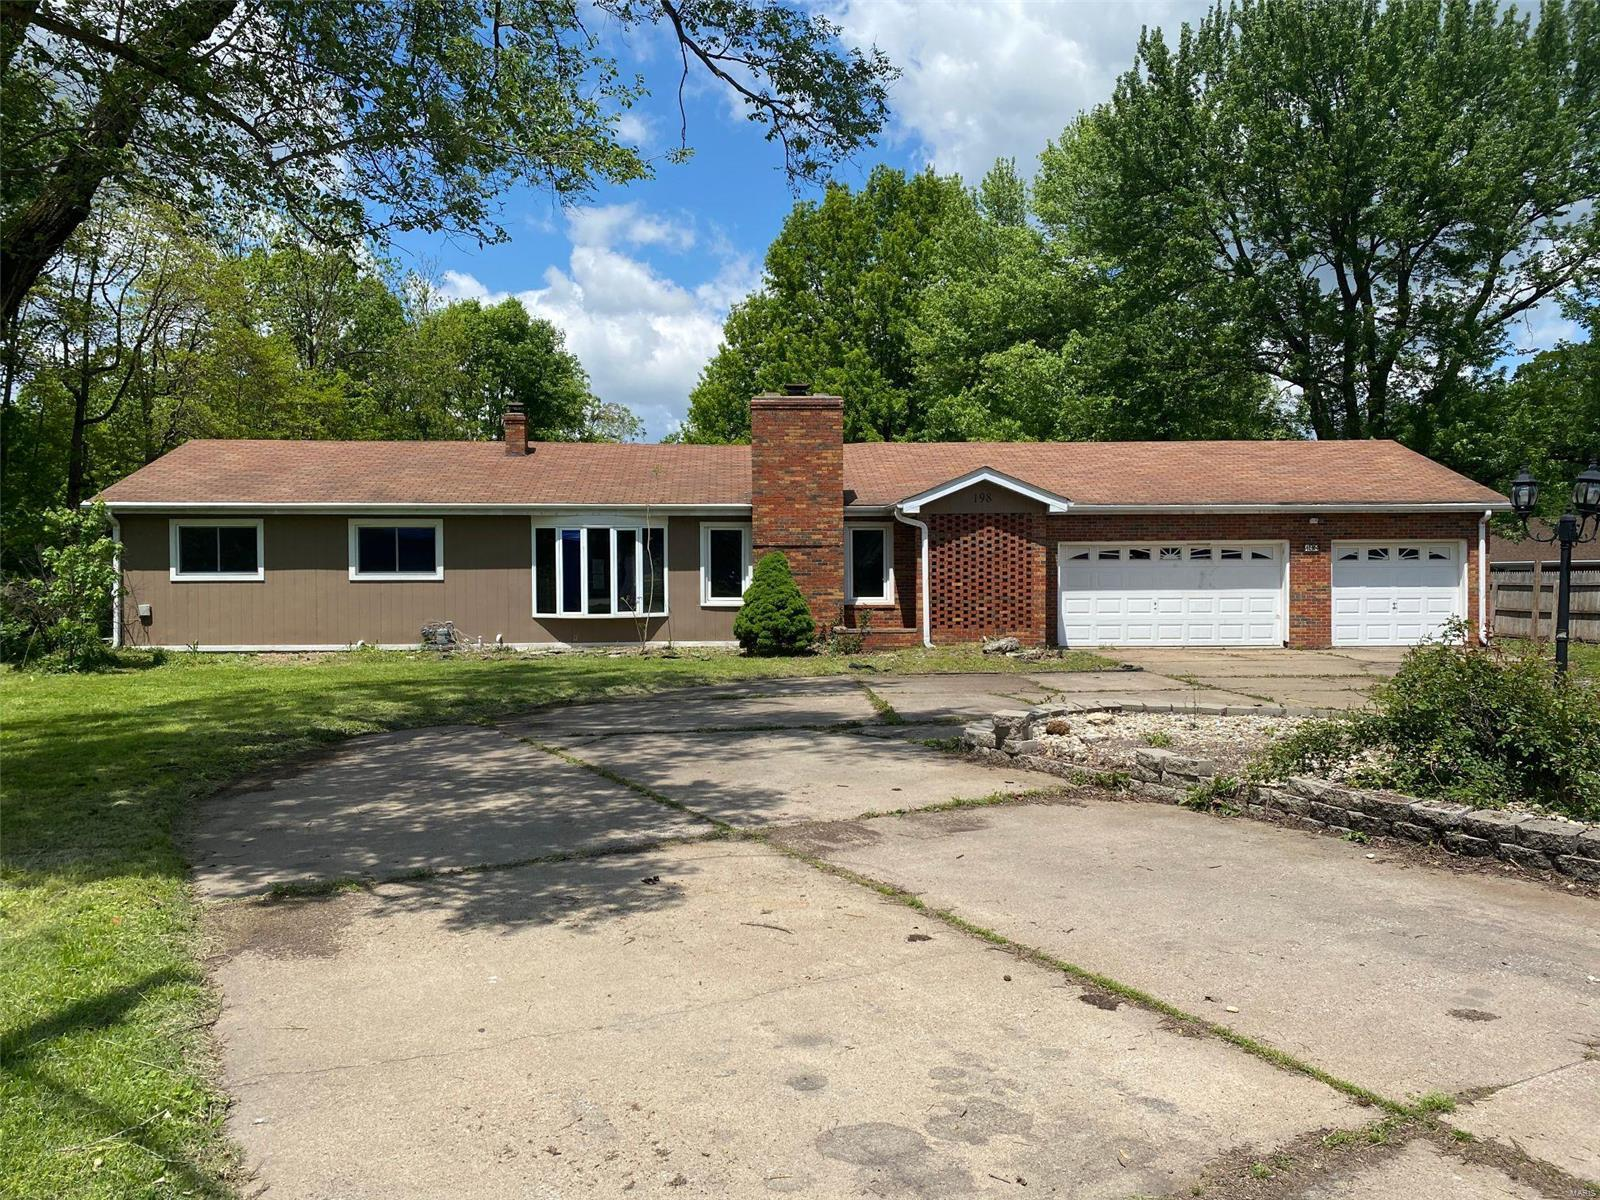 198 S Clearview Property Photo - East Alton, IL real estate listing